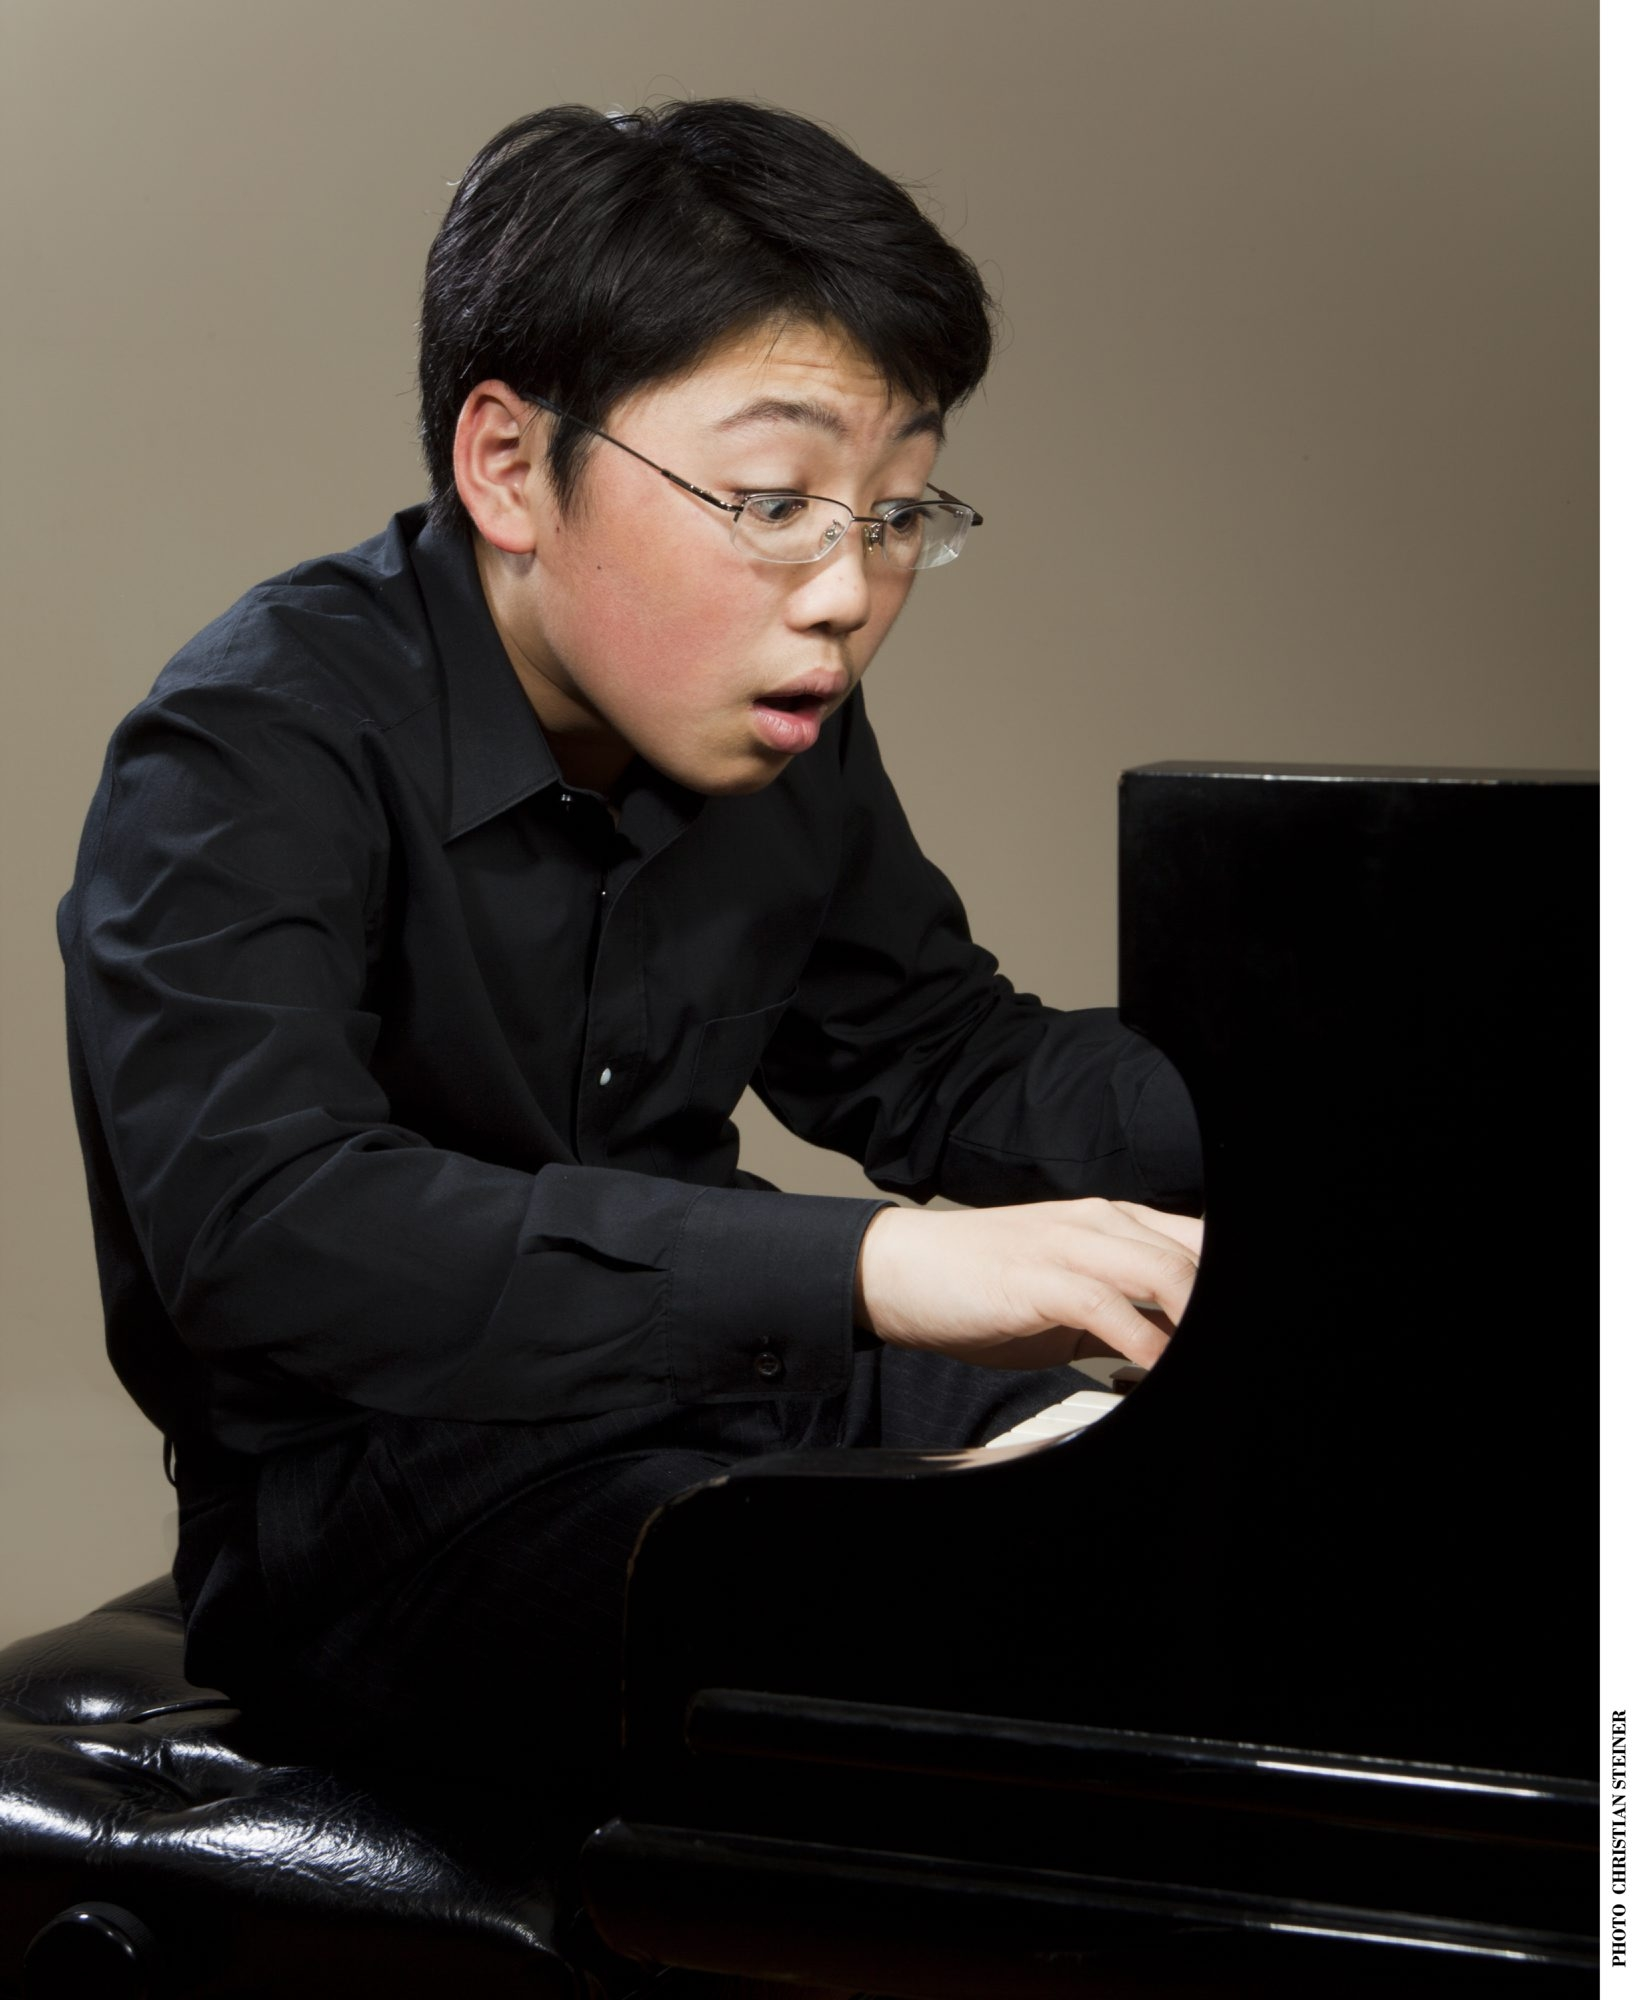 George Li, 17, is on his way to becoming a world-class pianist.